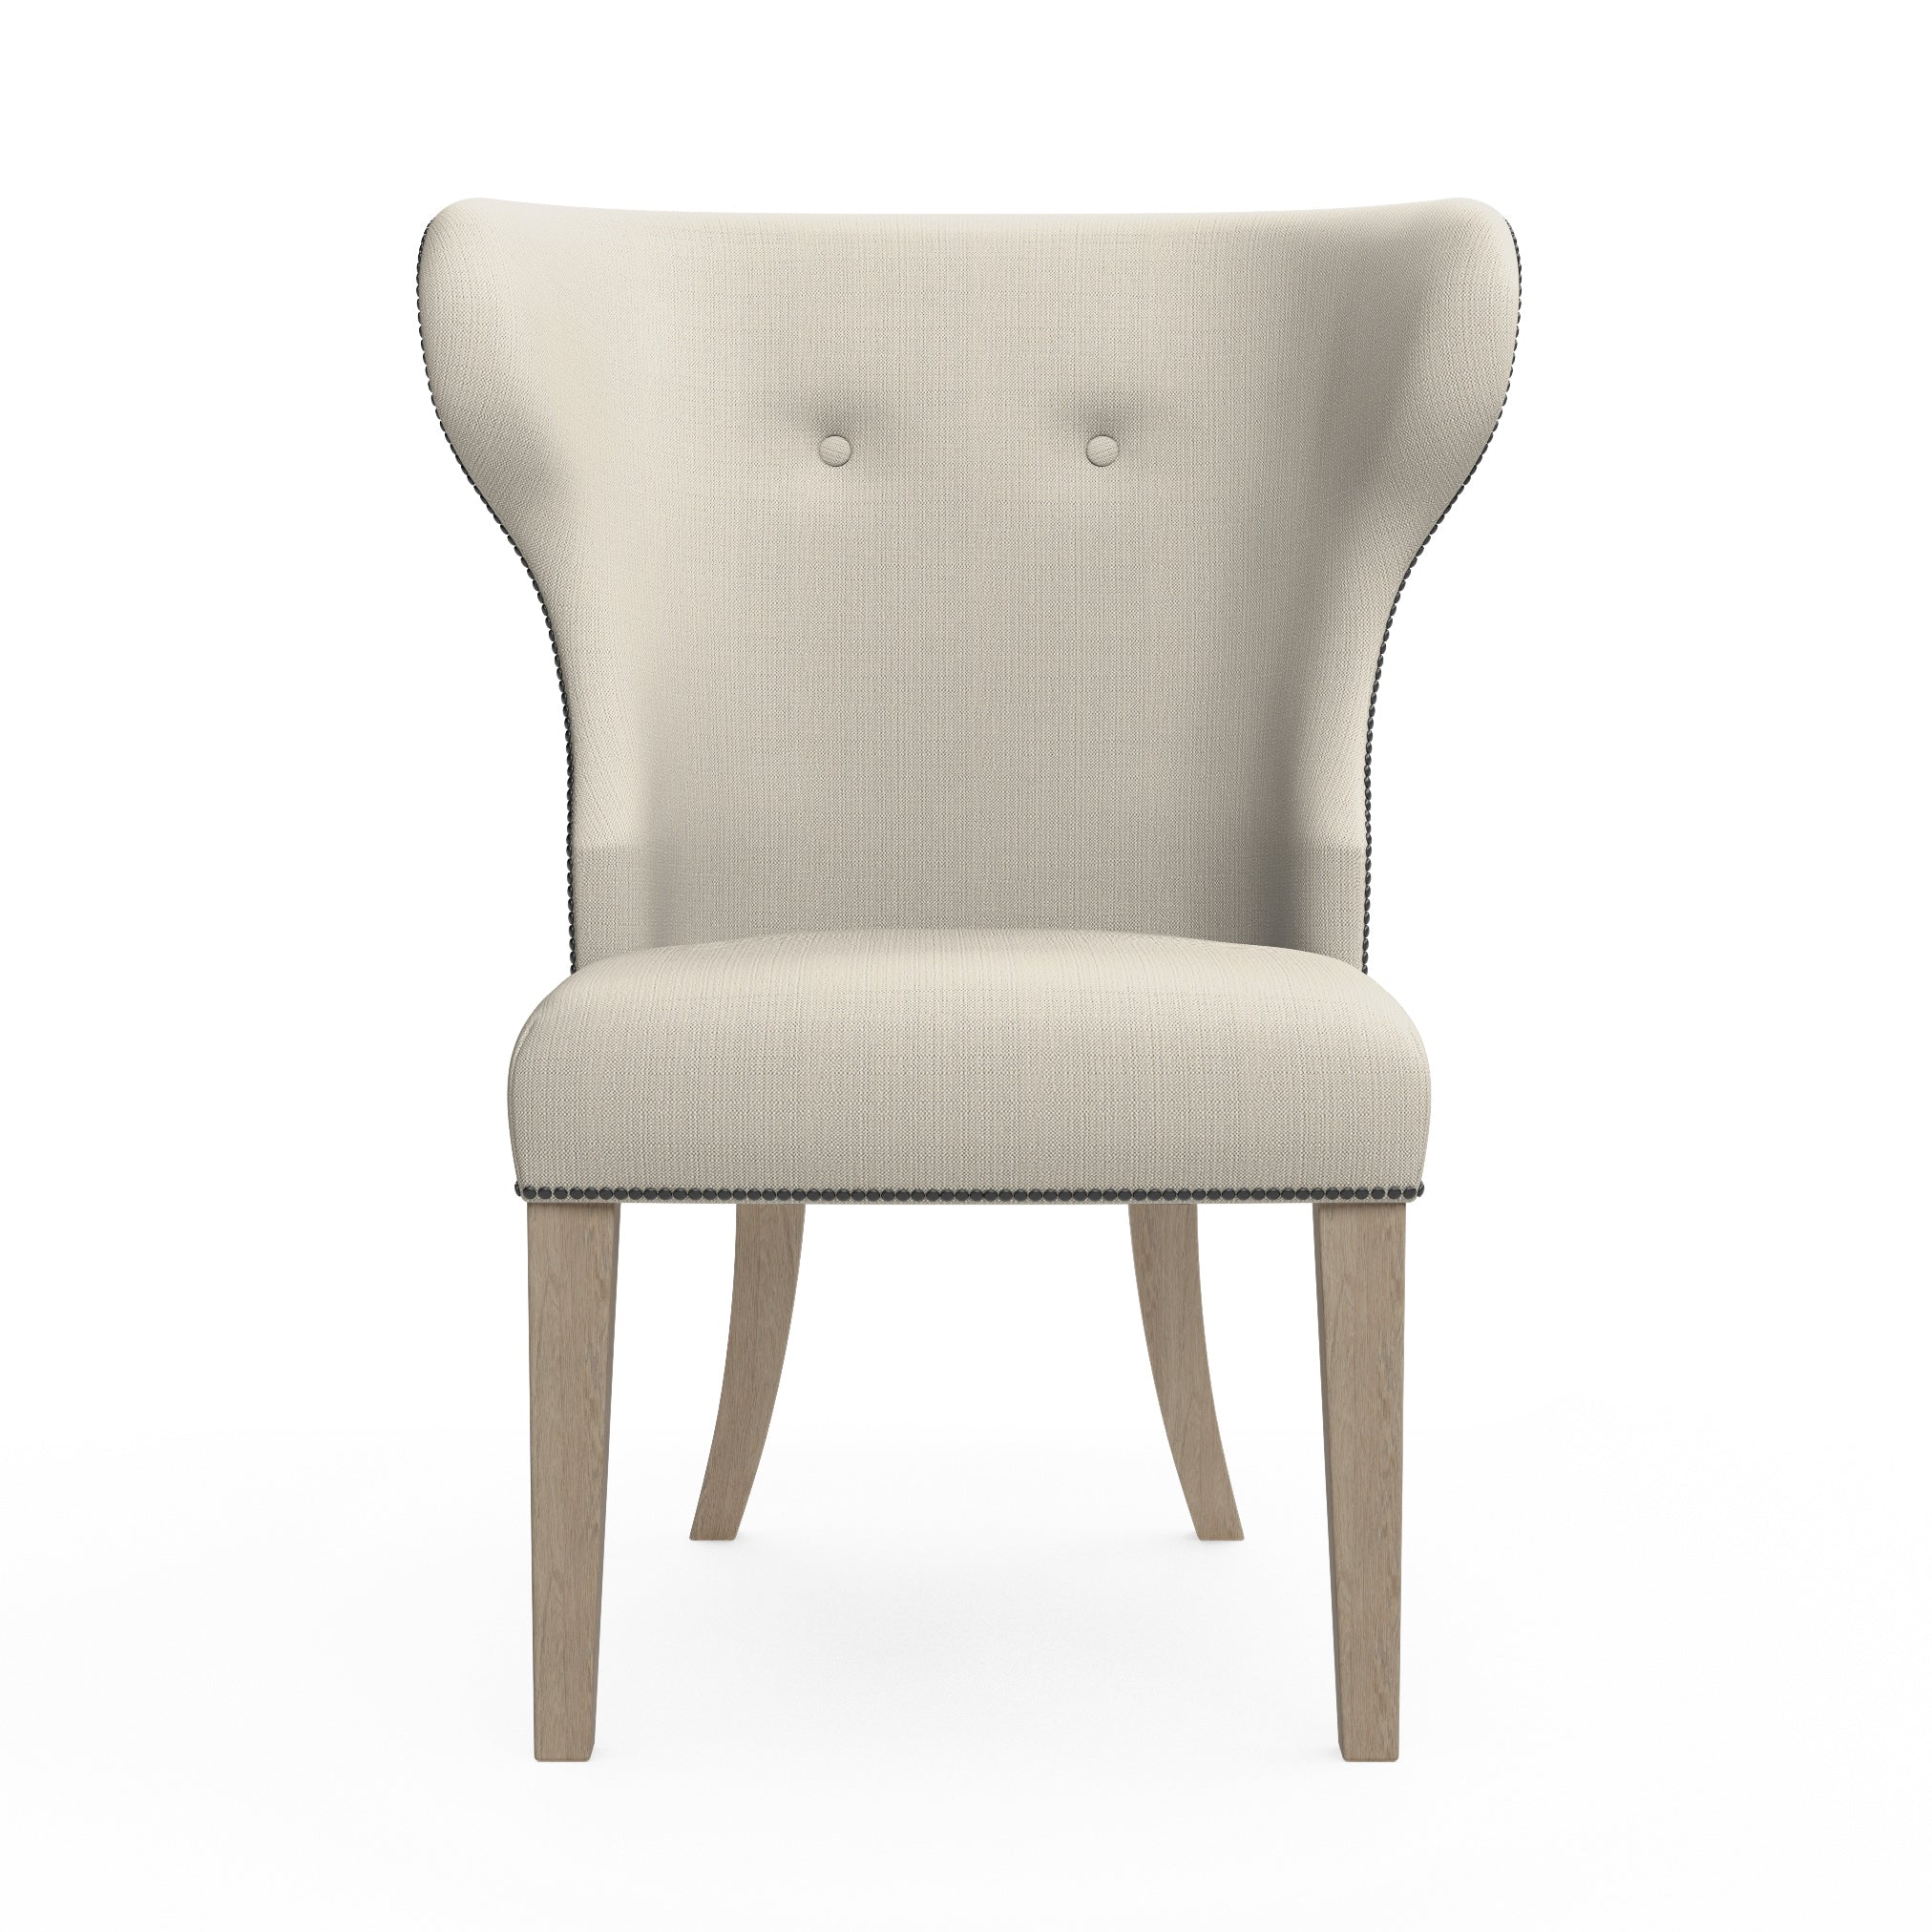 Nina Dining Chair - Oyster Box Weave Linen